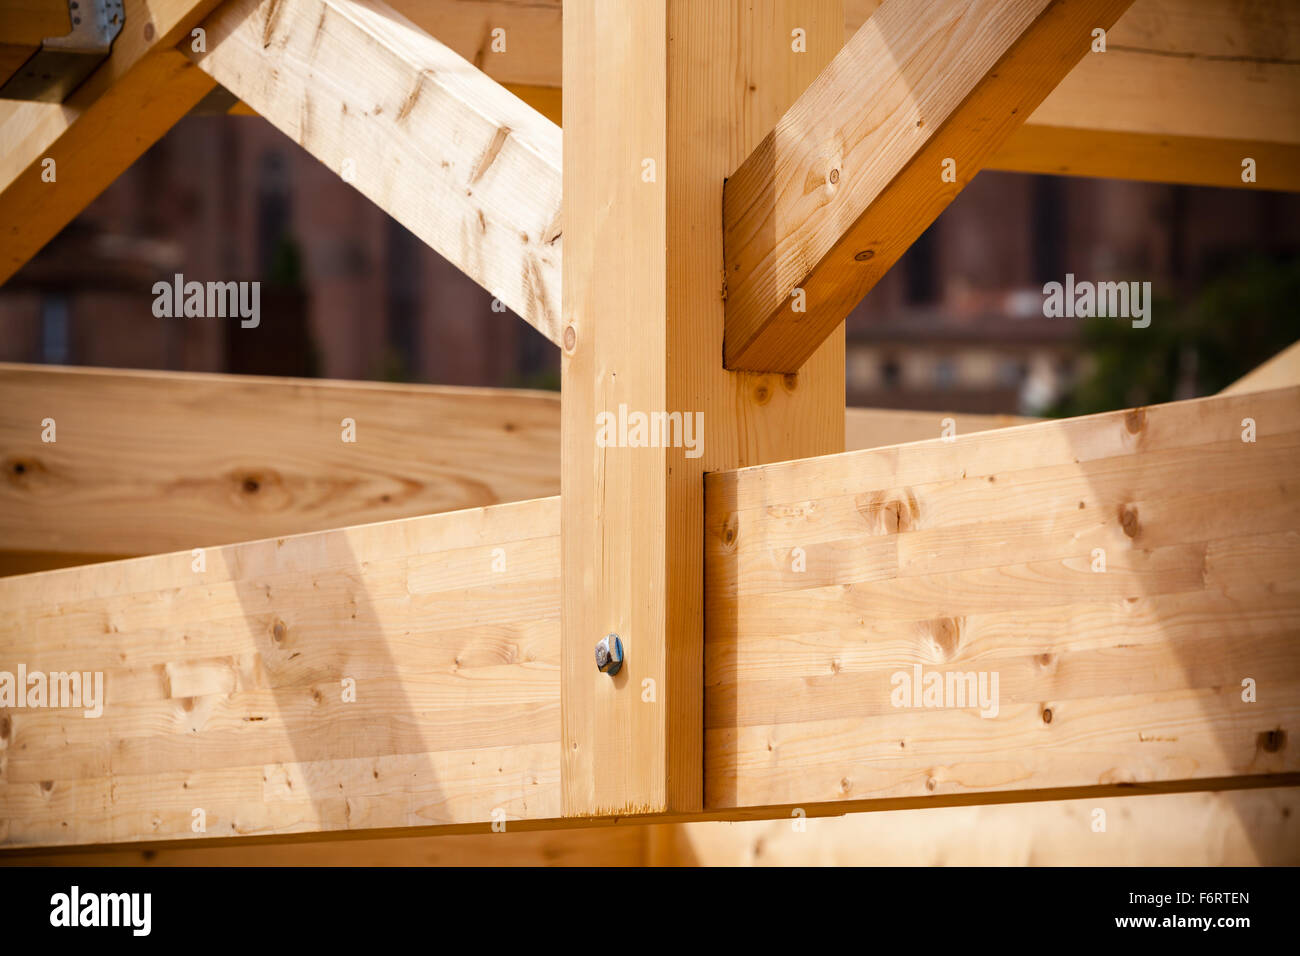 Close Up Wooden Roof Beams Home Stockfotos & Close Up Wooden Roof ...